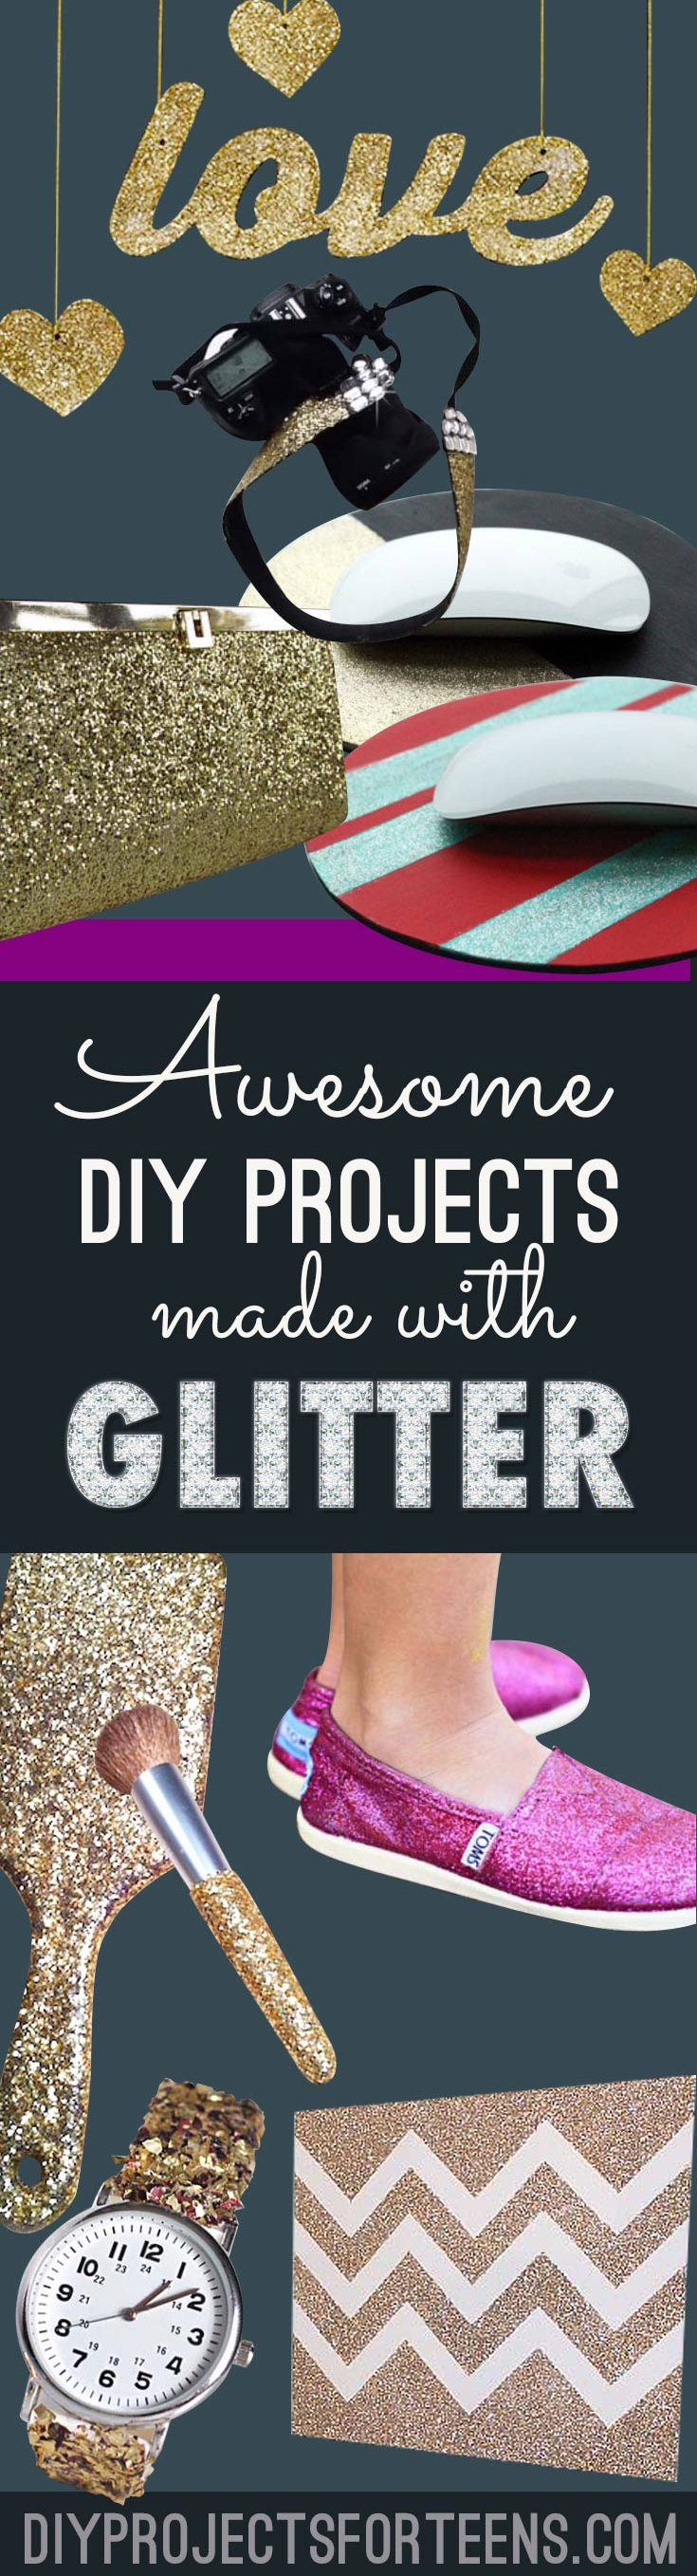 Cool DIY Crafts Made With Glitter - Sparkly, Creative Projects and Ideas for the Bedroom, Clothes, Shoes, Gifts, Wedding and Home Decor | Easy Teen Crafts, Gifts and Room Decor Ideas